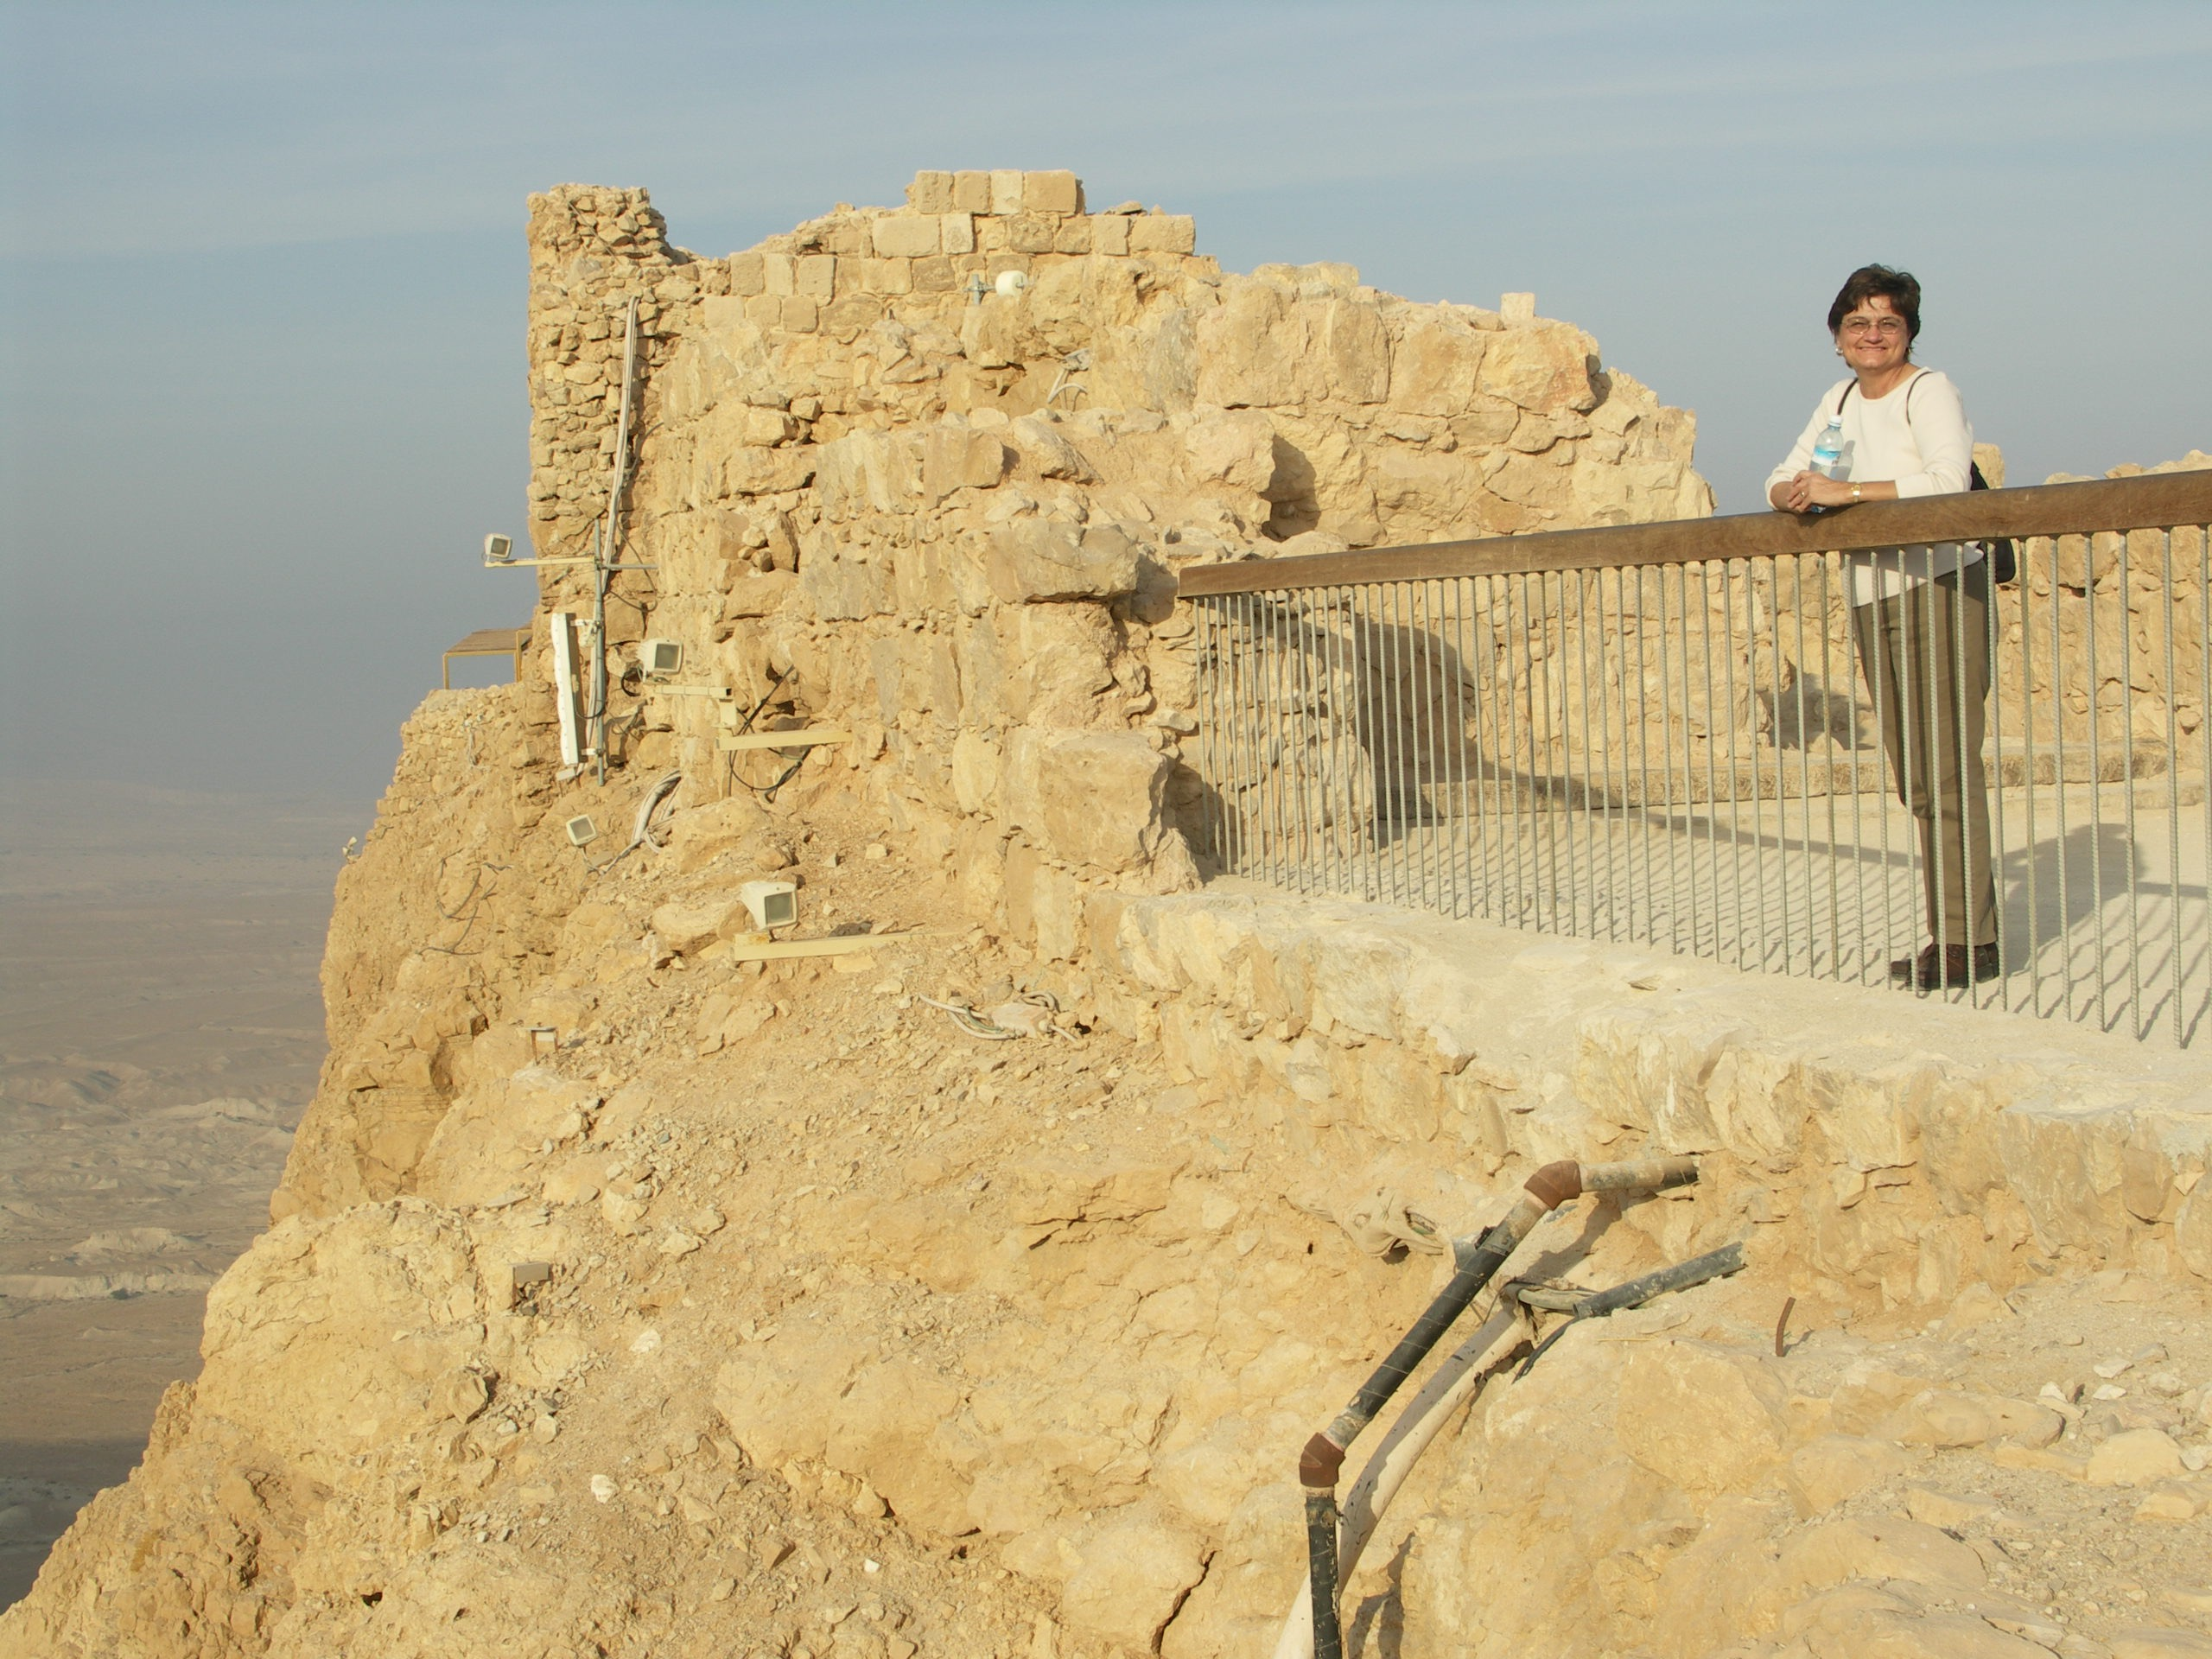 We road the tram to the top of Masada.  Here I am looking out over the barren land below.  Hard not to feel the quite of that place and the isolation.  There are sacred places in this world and this is one.